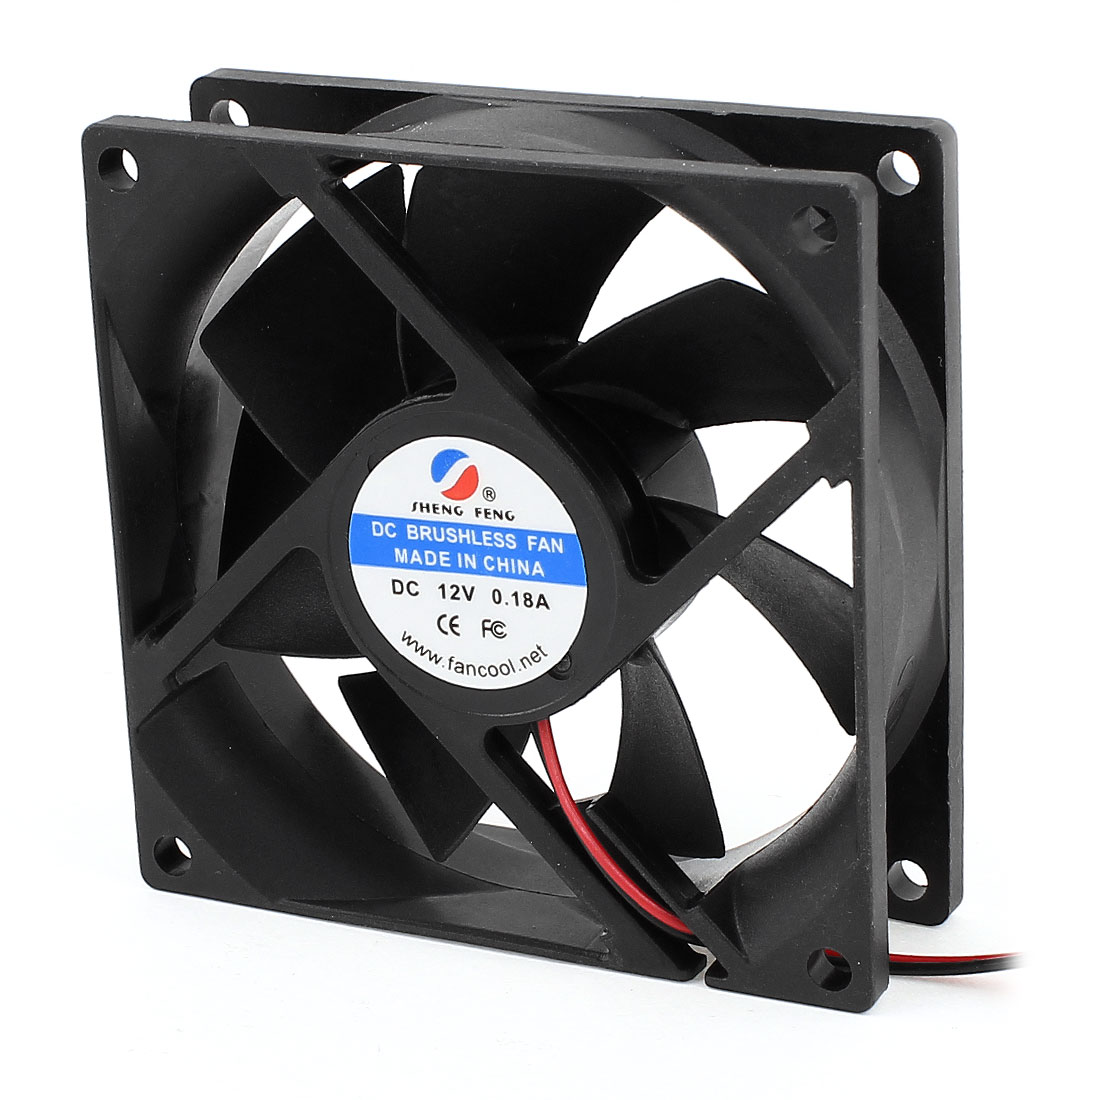 DC 12V 0.18A 80mm Cooling Fan Black for Computer Cases CPU Coolers Radiator